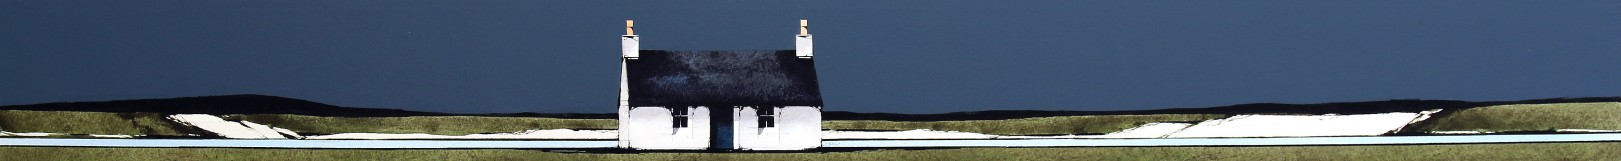 Ron Lawson_Island Cottage I_EAS605_Watercolour & Gouache_3.75x38.5